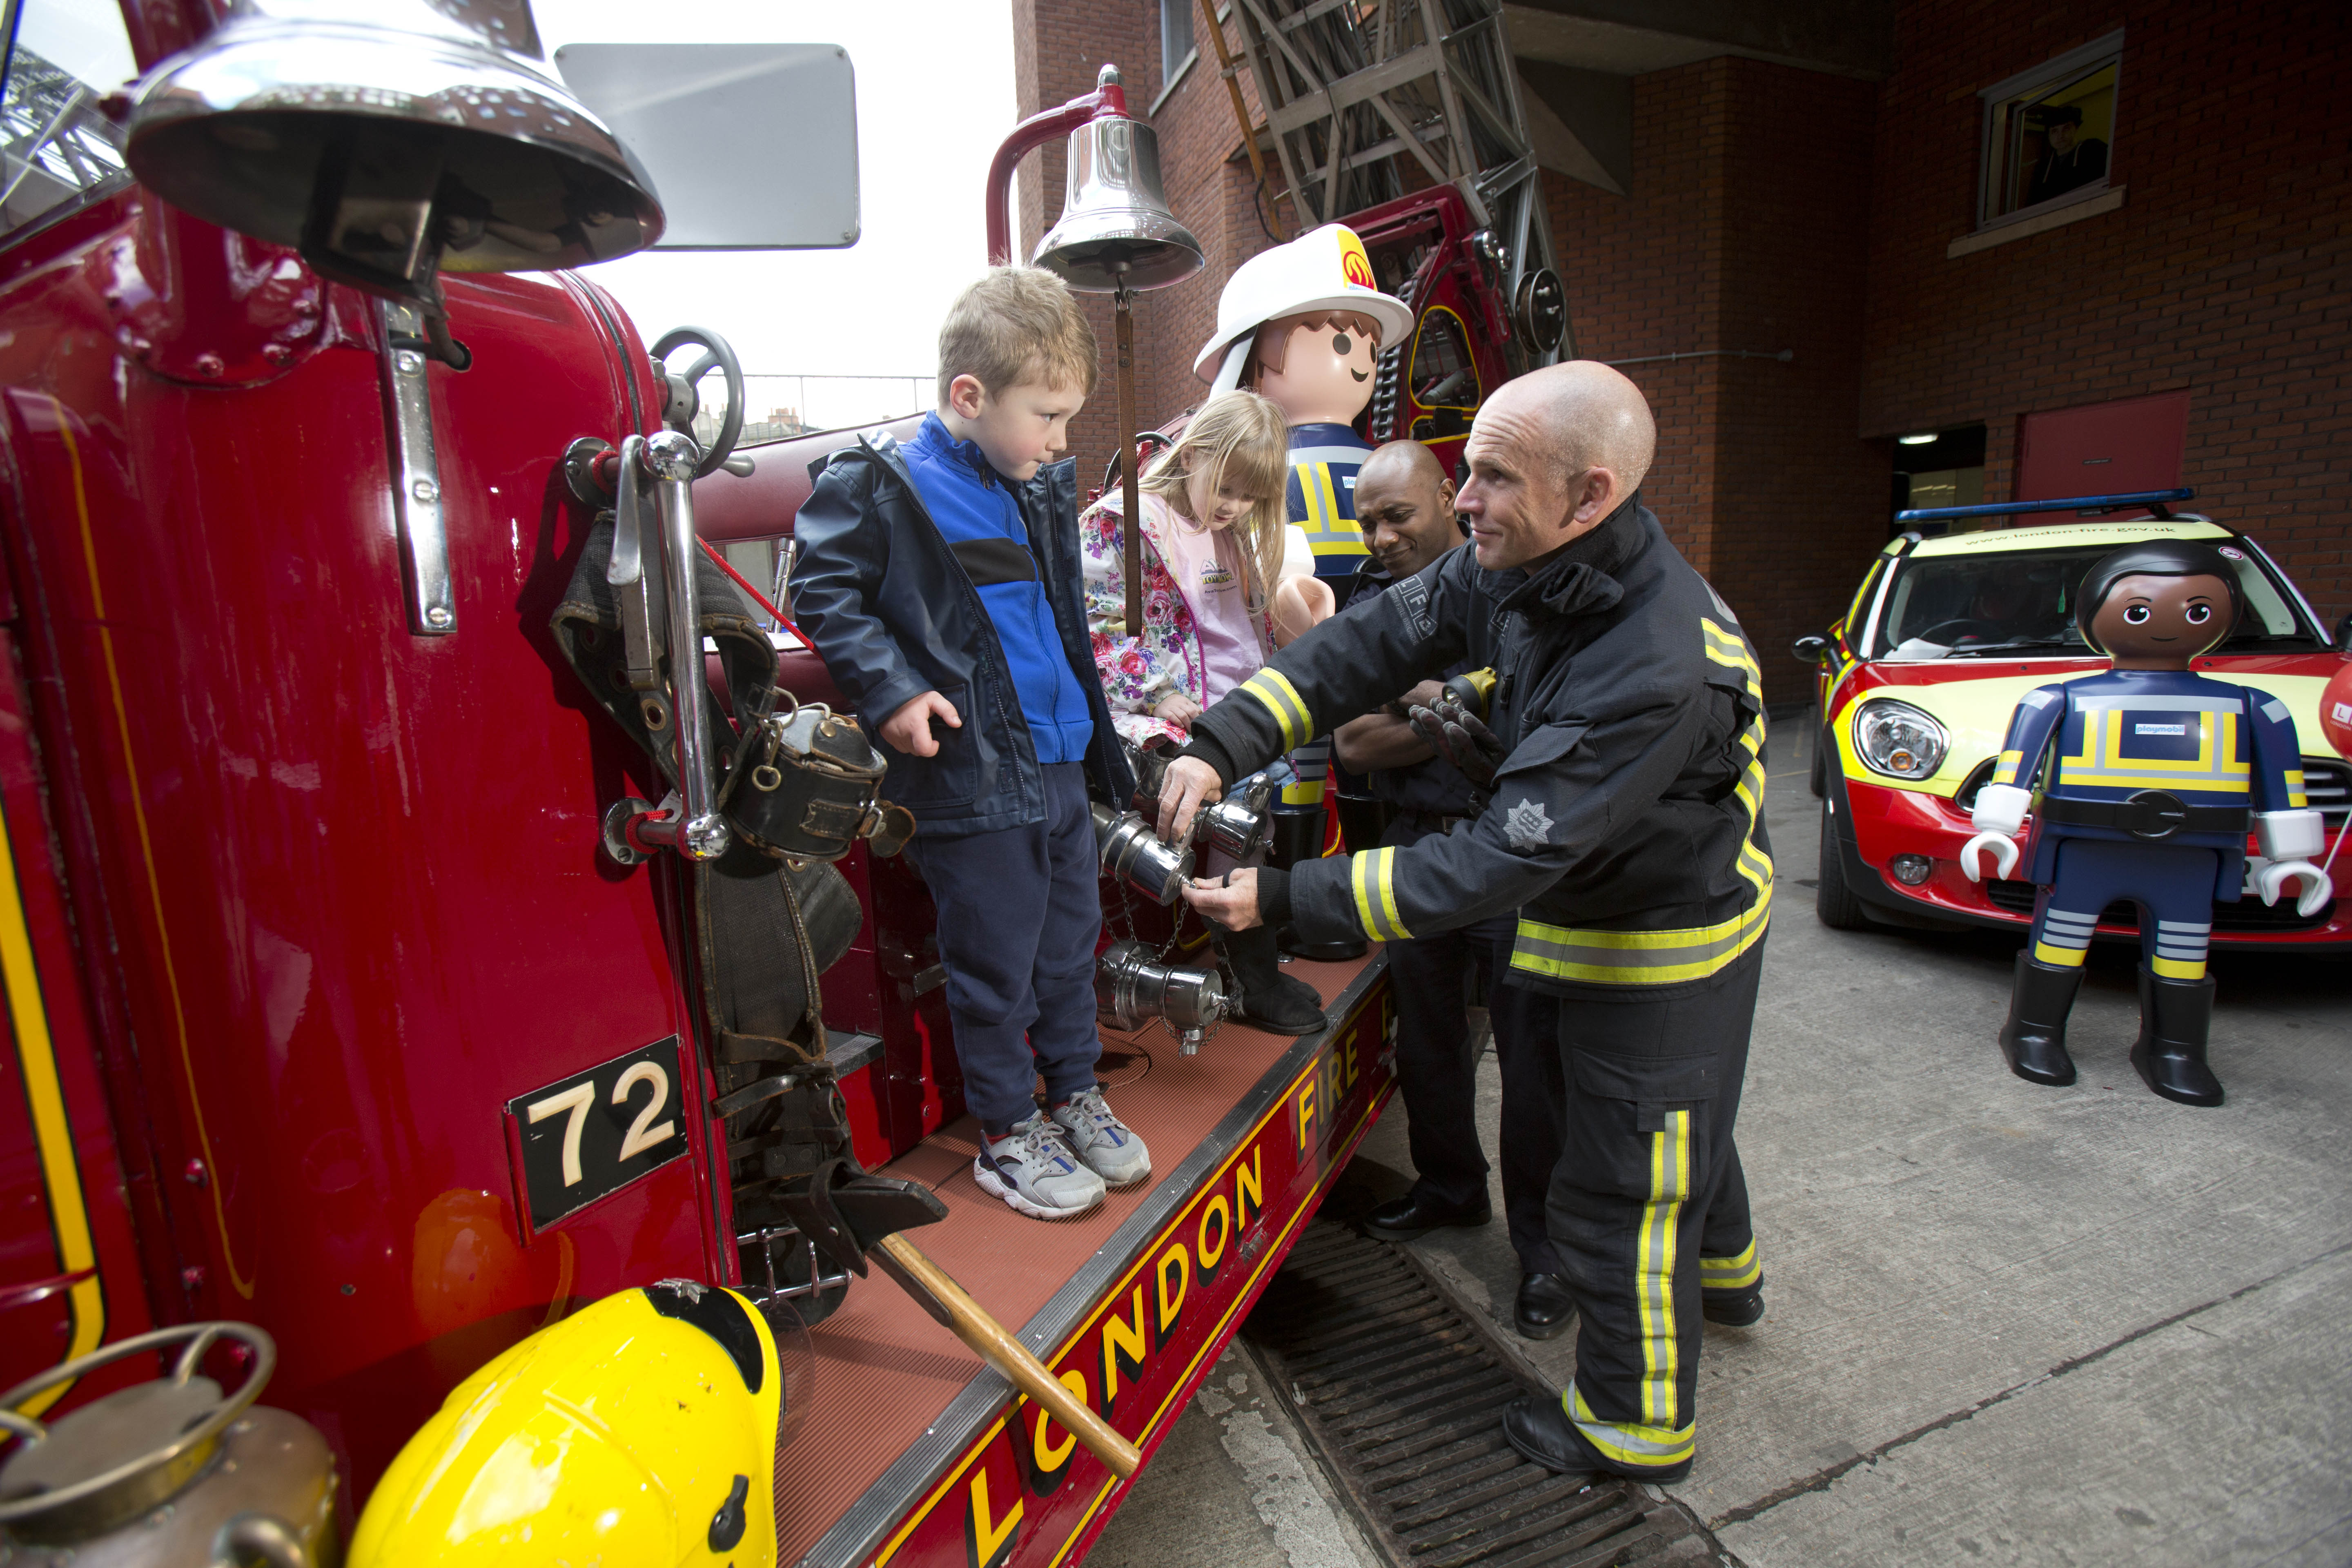 Playmobil partners with London Fire Brigade (LFB) to celebrate their 150th anniversary at Soho Fire Station yesterday (9th April, 2016) LFB firefighters use Playmobil toys and vintage engines to teach kids about fire safety at the launch of the BrigadeÕs 150th anniversary open days PIX:TIM ANDERSON